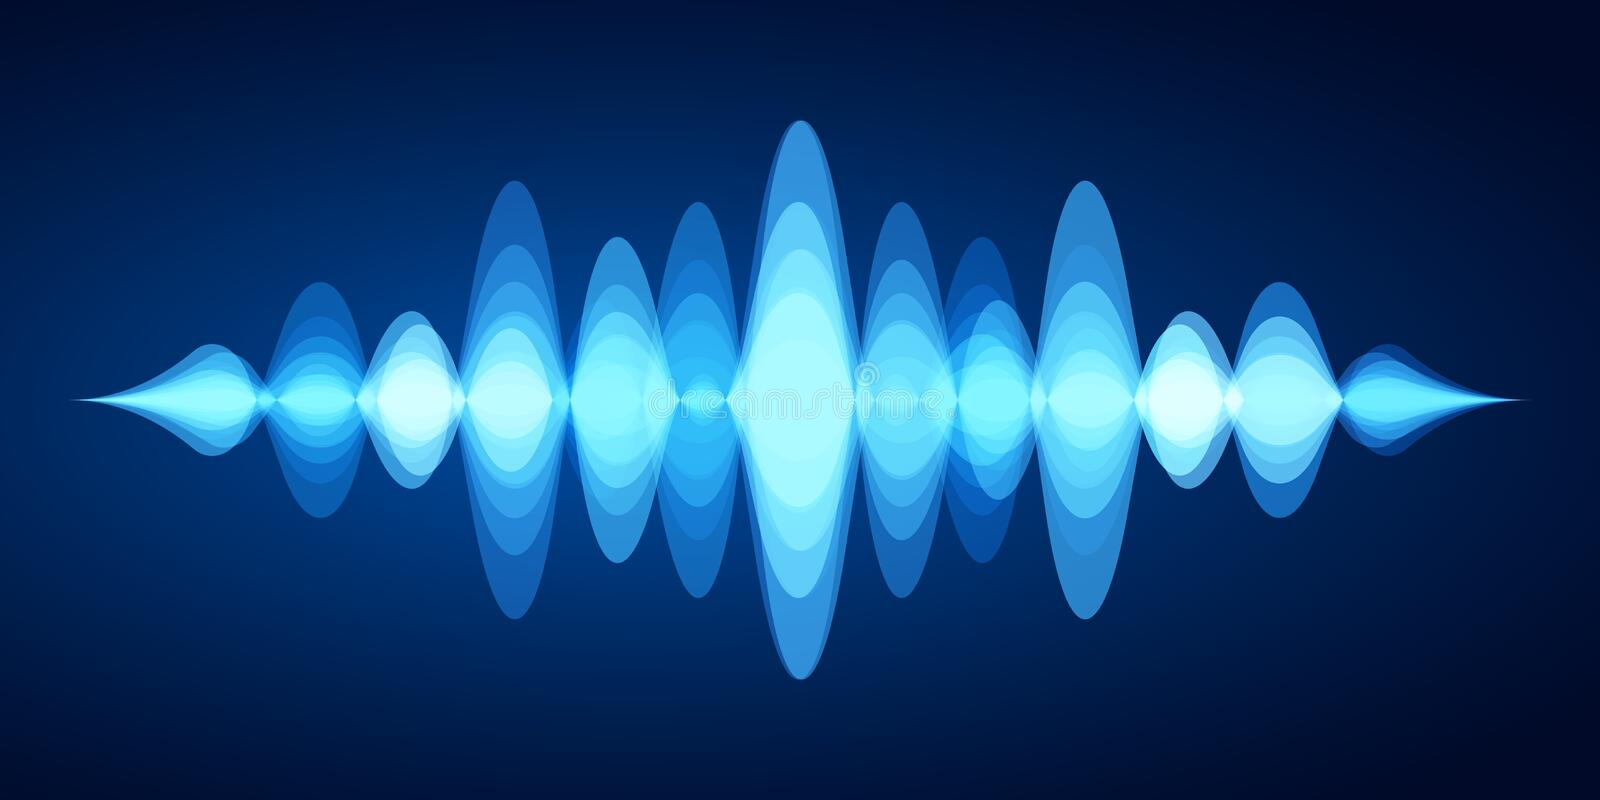 Abstract sound wave. Blue voice sounds waveform spectrum, music energy vibrations equalizer and stereo analyzer vector vector illustration